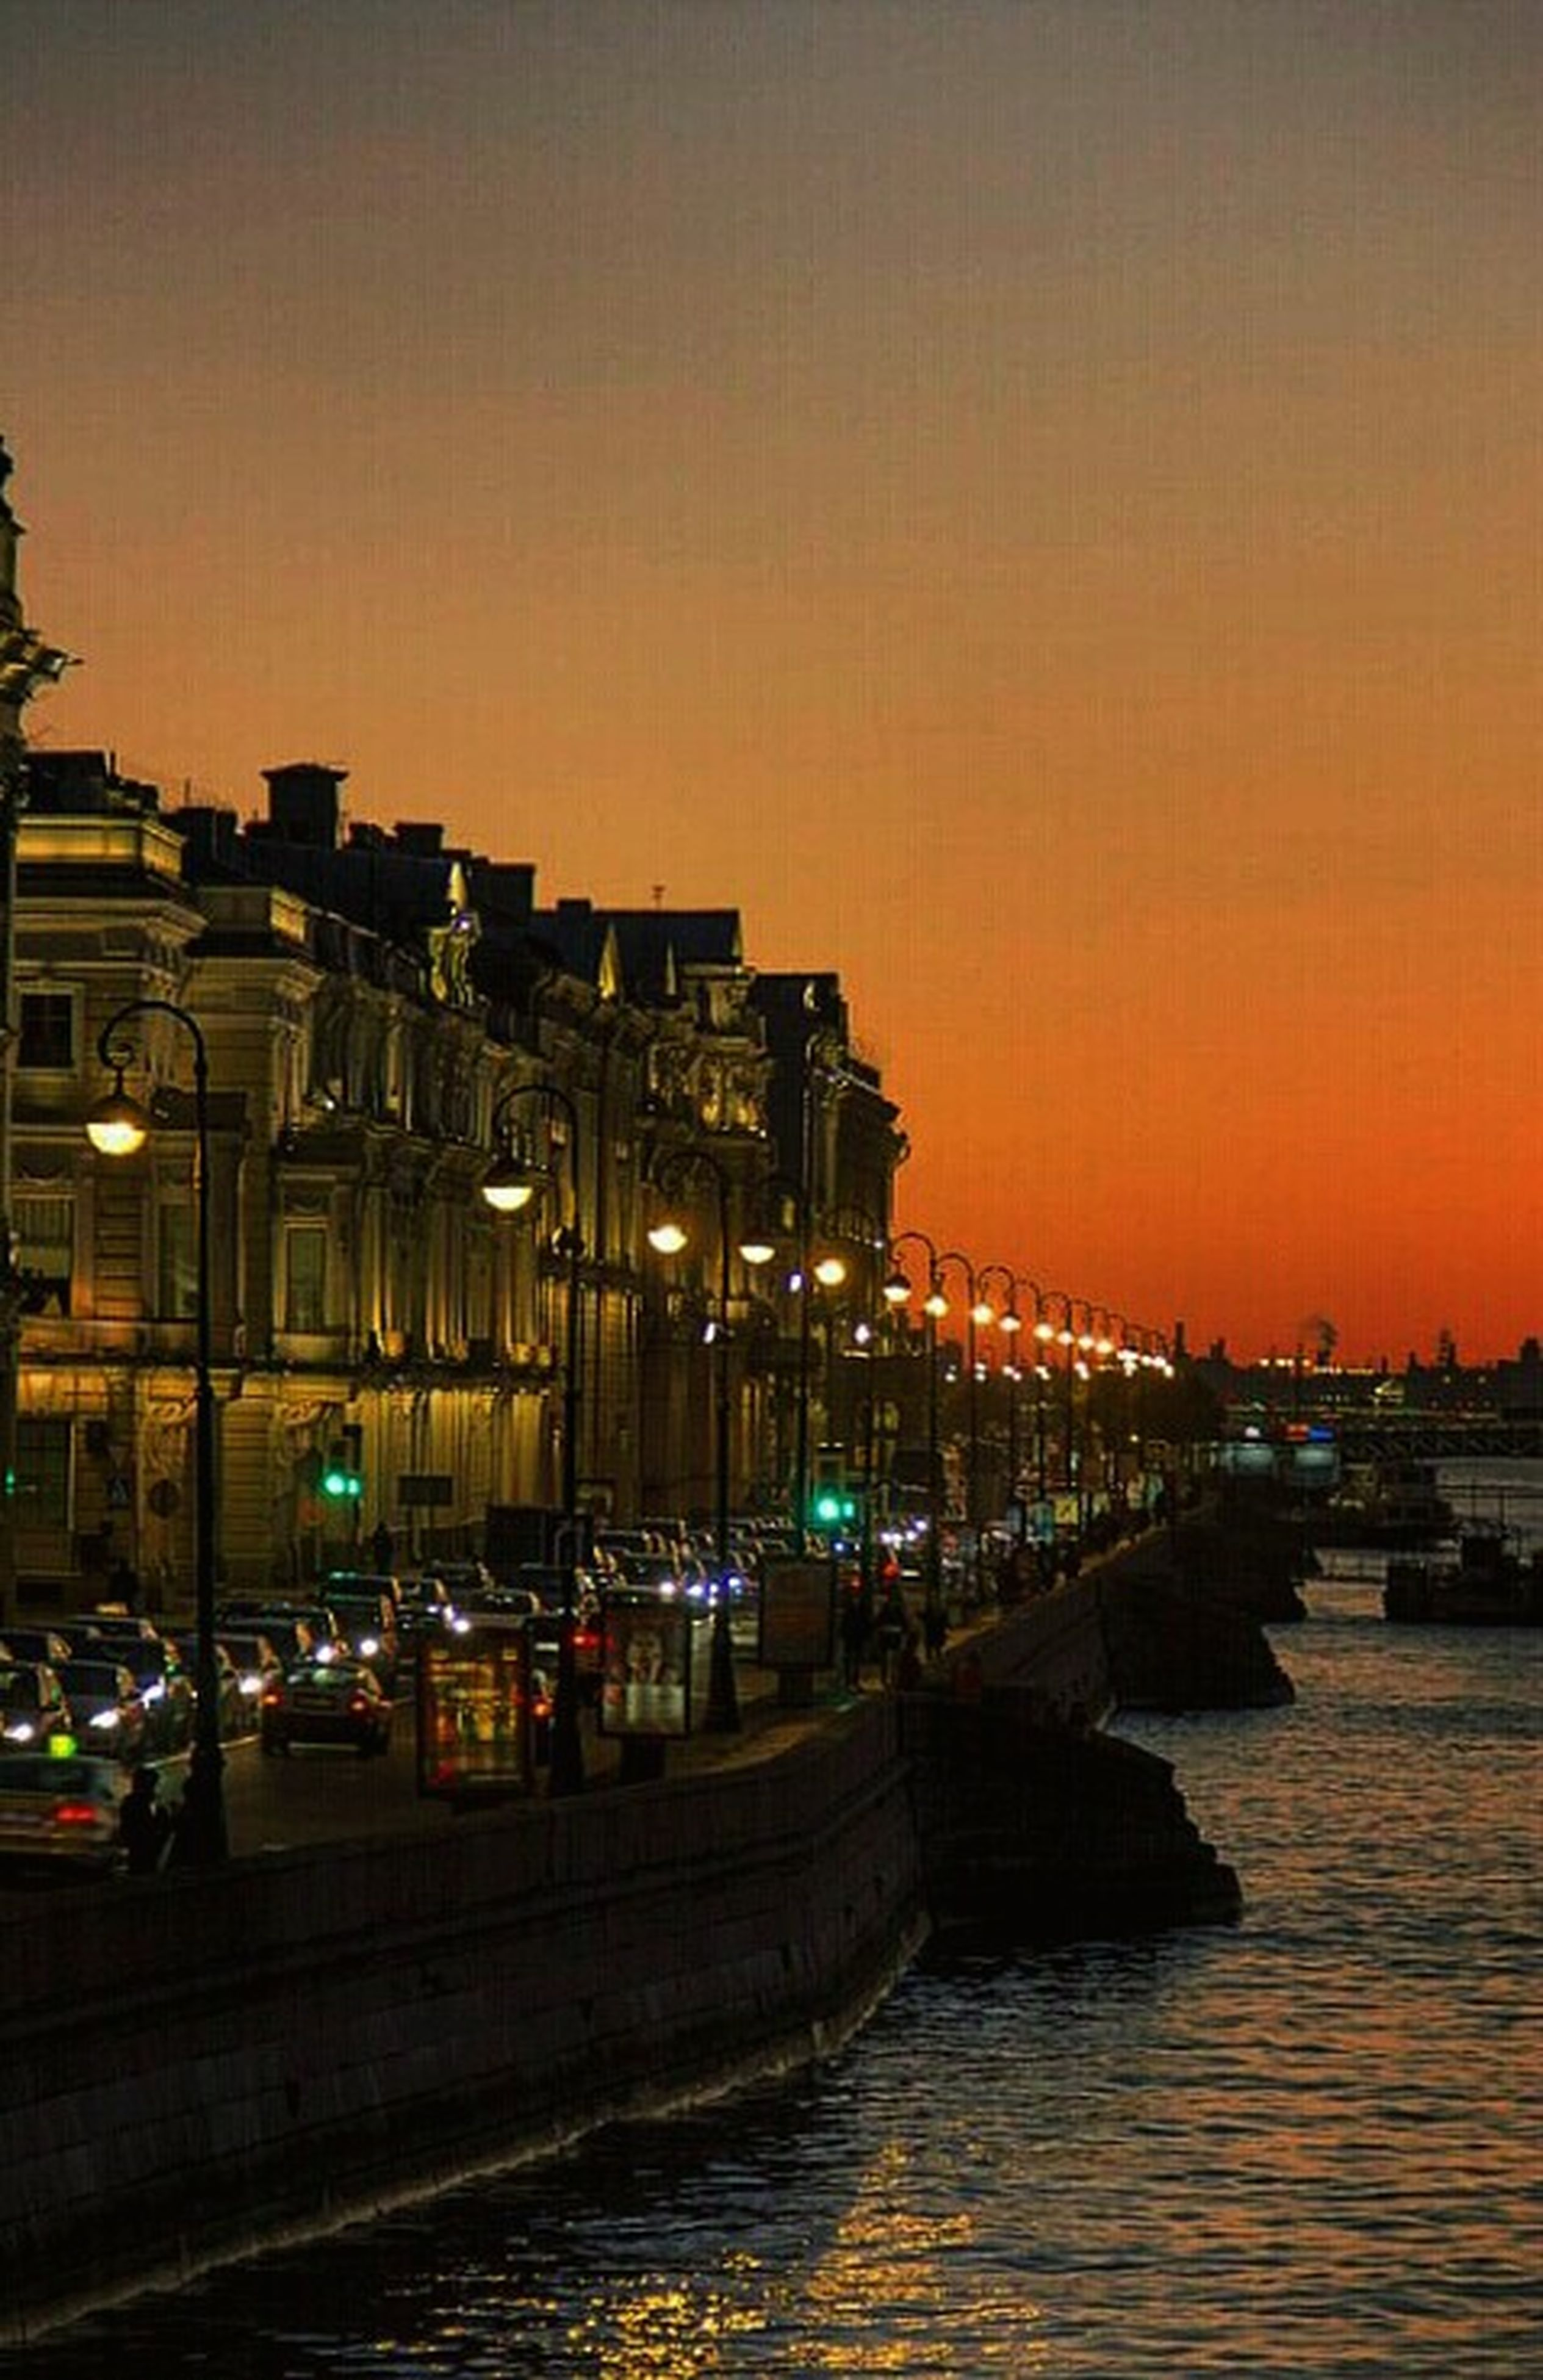 illuminated, building exterior, architecture, sunset, water, built structure, transportation, city, night, waterfront, orange color, sky, river, mode of transport, dusk, clear sky, reflection, outdoors, street light, sea